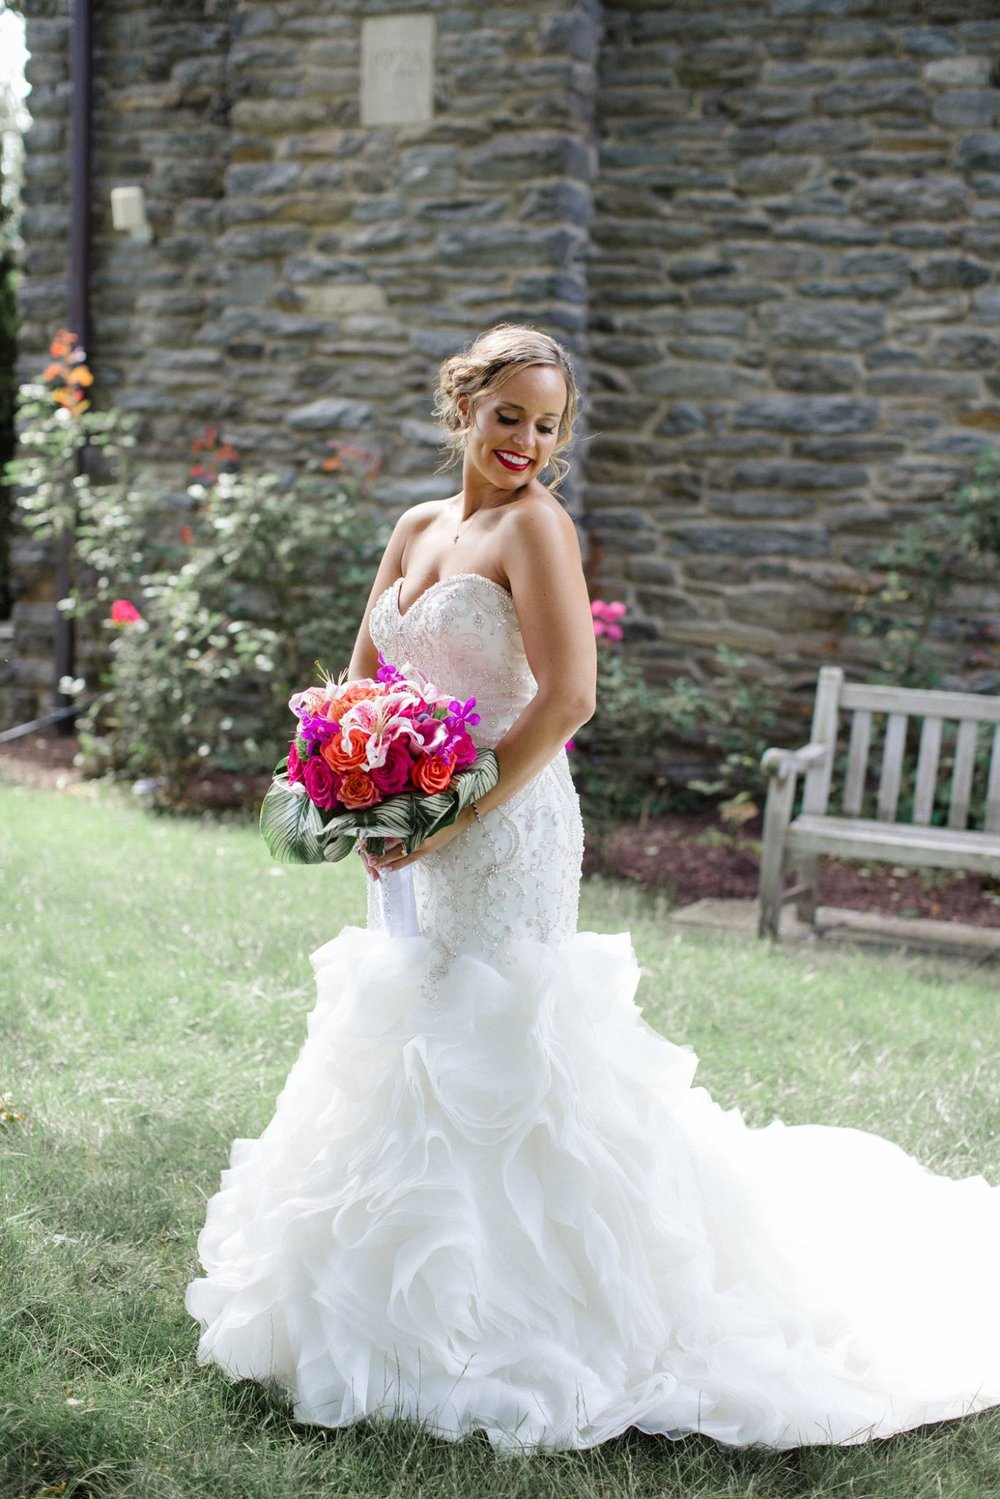 Wedding Photos Scranton PA Wedding Photographers-4.jpg